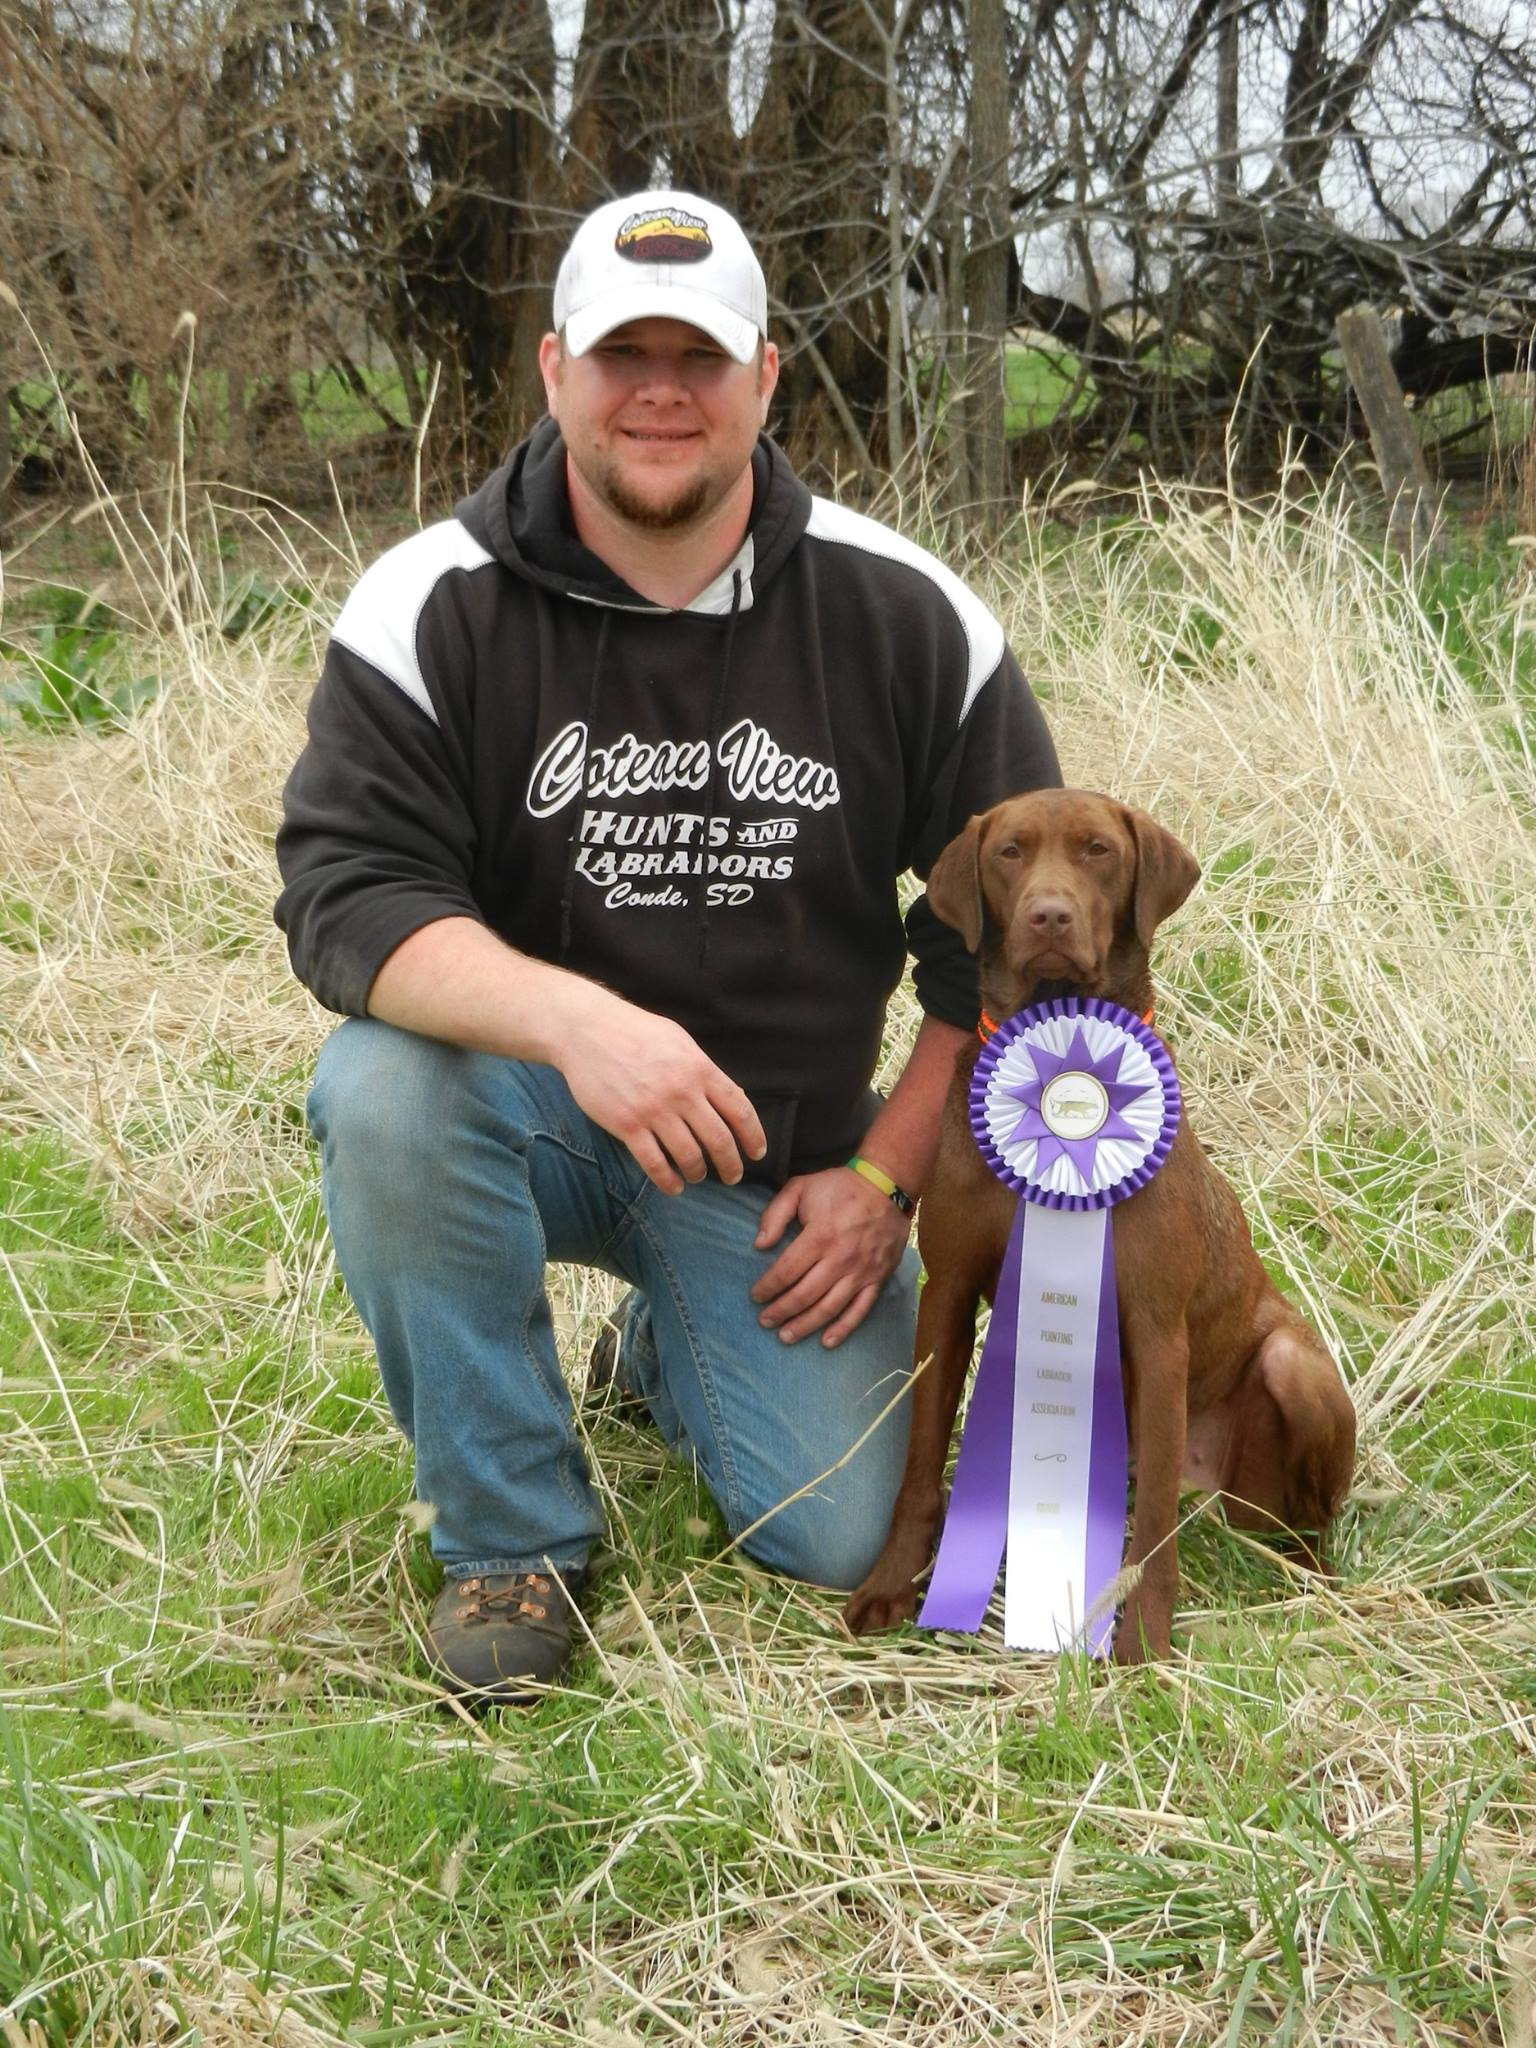 GMPR Diva (GMPR Gator SH X CPR Lucy) is owned by Bryce